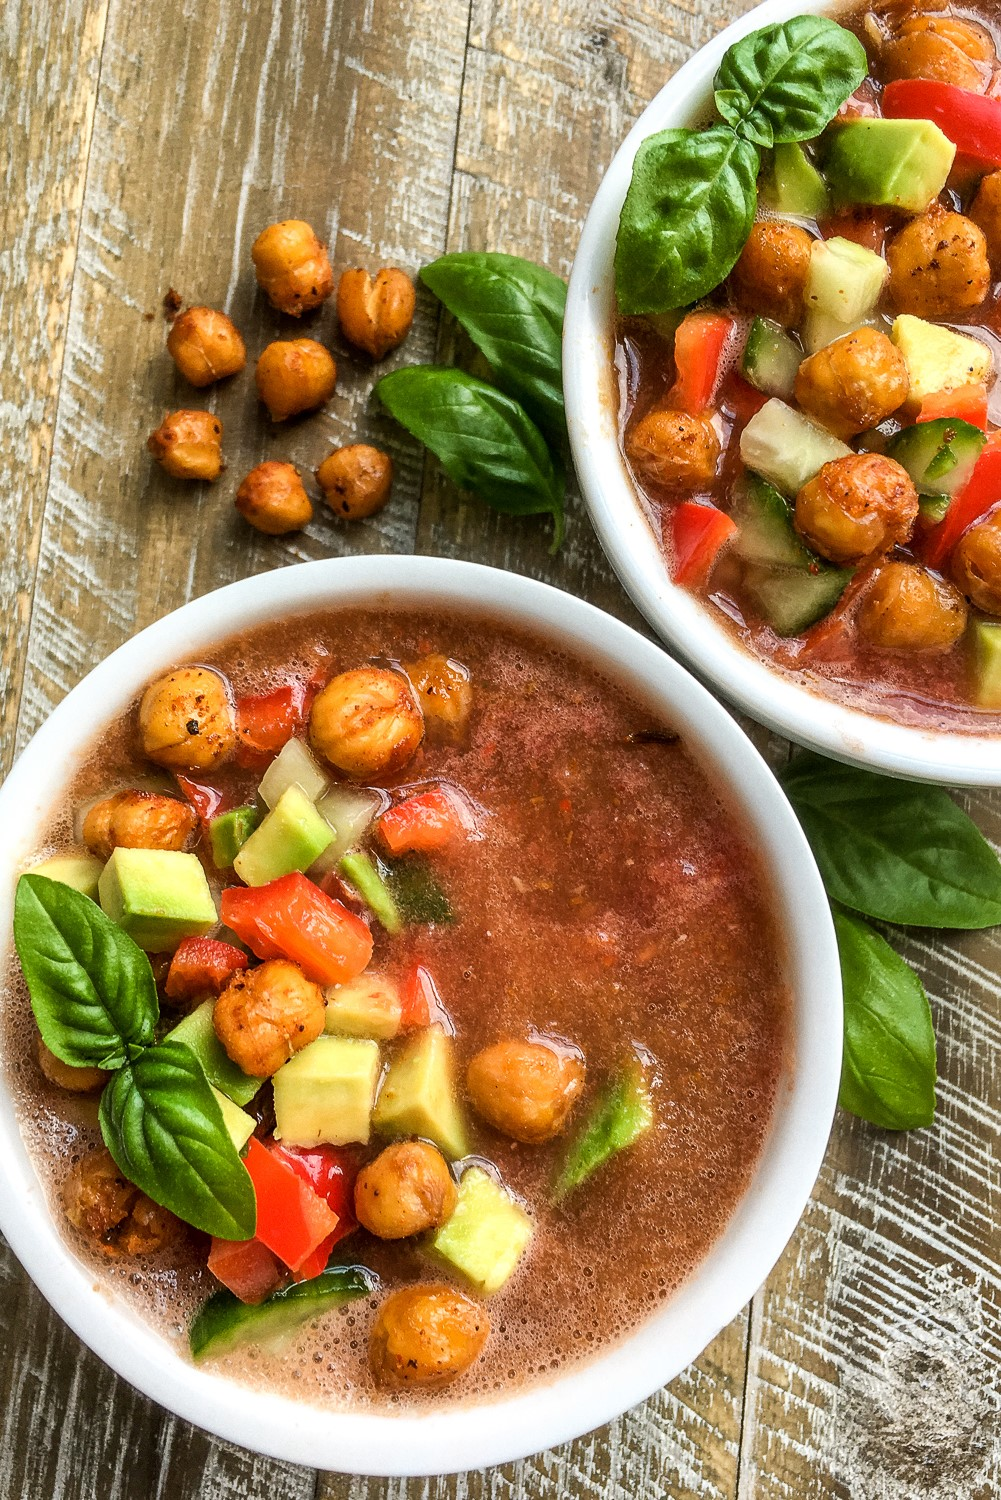 A healthy gazpacho recipe that's naturally gluten free, keto friendly, and vegan. It's perfect for hot summer days!